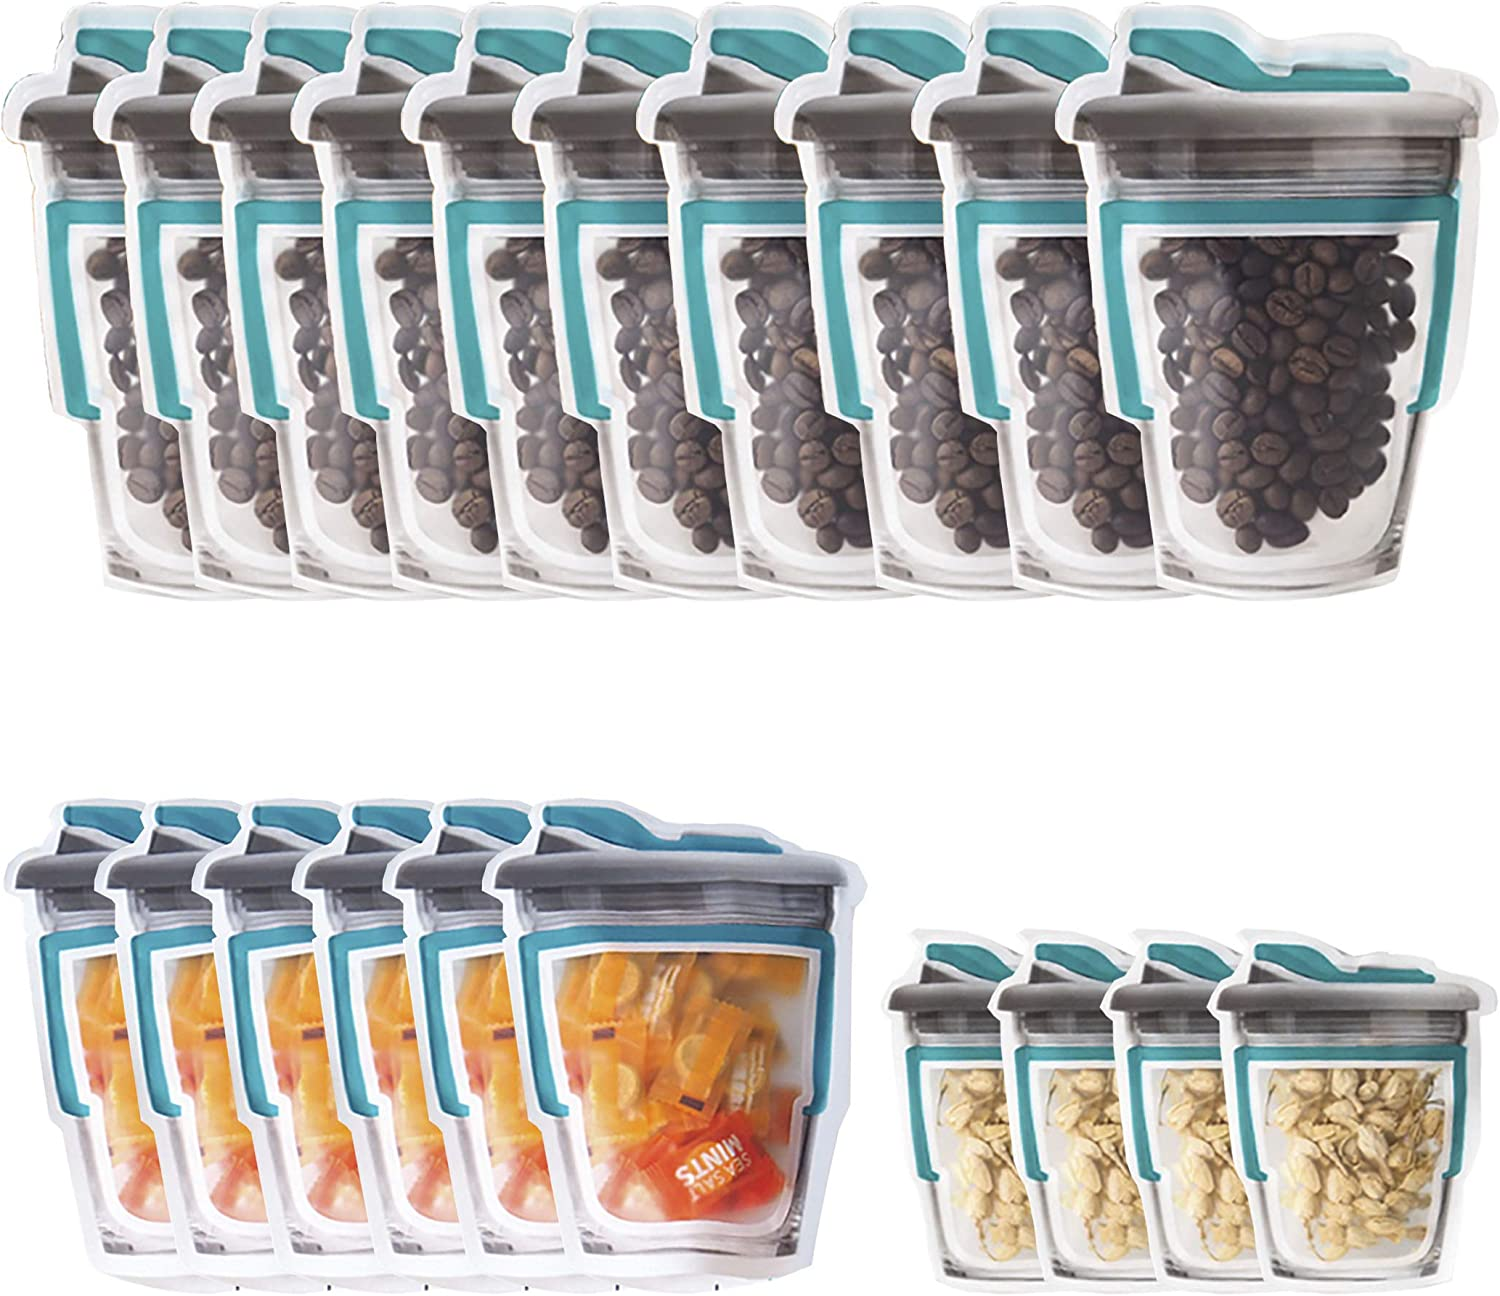 Enkrio Mason Jar Bags, 20 Pack Reusable Airtight Seal Food Storage Bags Snack Sandwich Fresh Sealed Baggies for Kids Home, Freezer Safe(S+M+L) (Green)